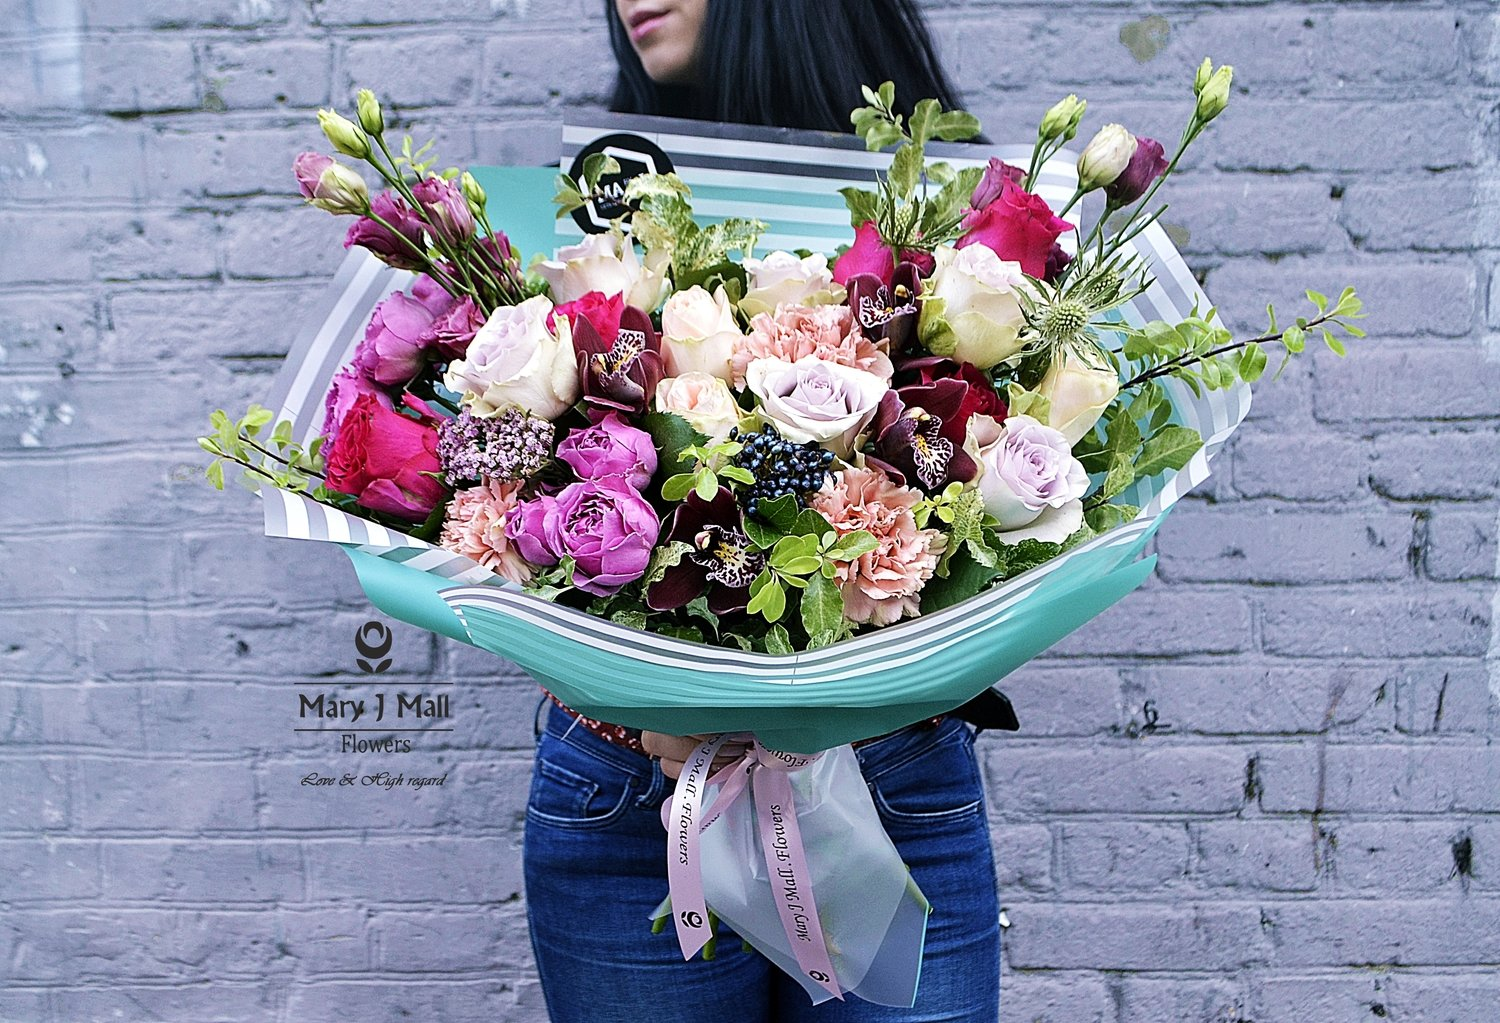 So sweet and beautiful bouquet...